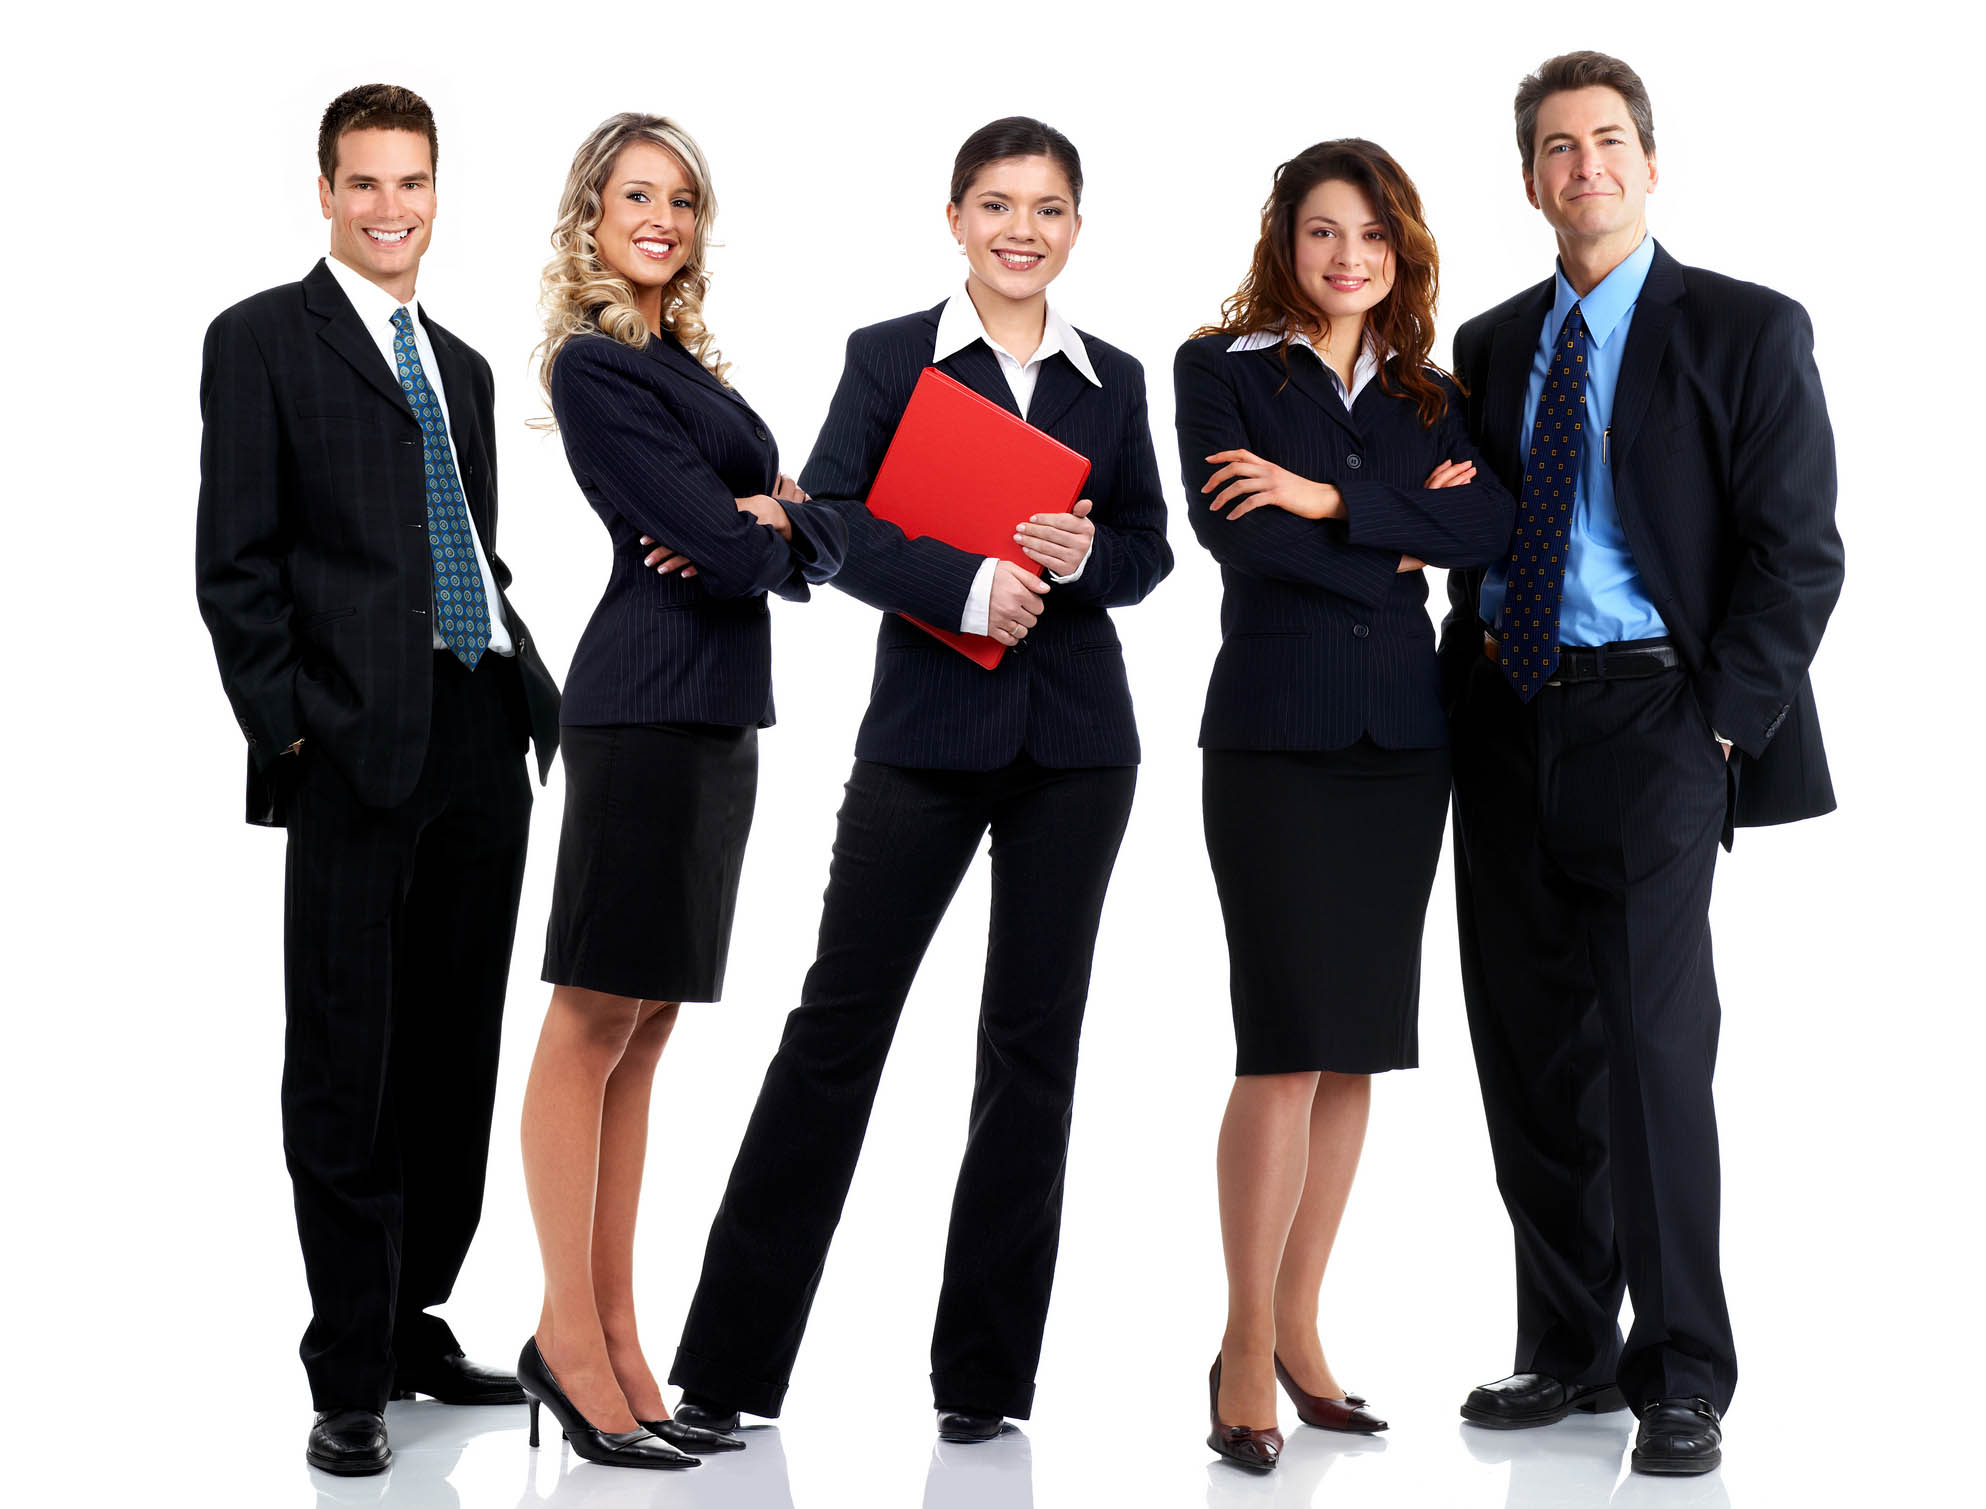 5 Office Work Ware Tips For a Professional Appearance